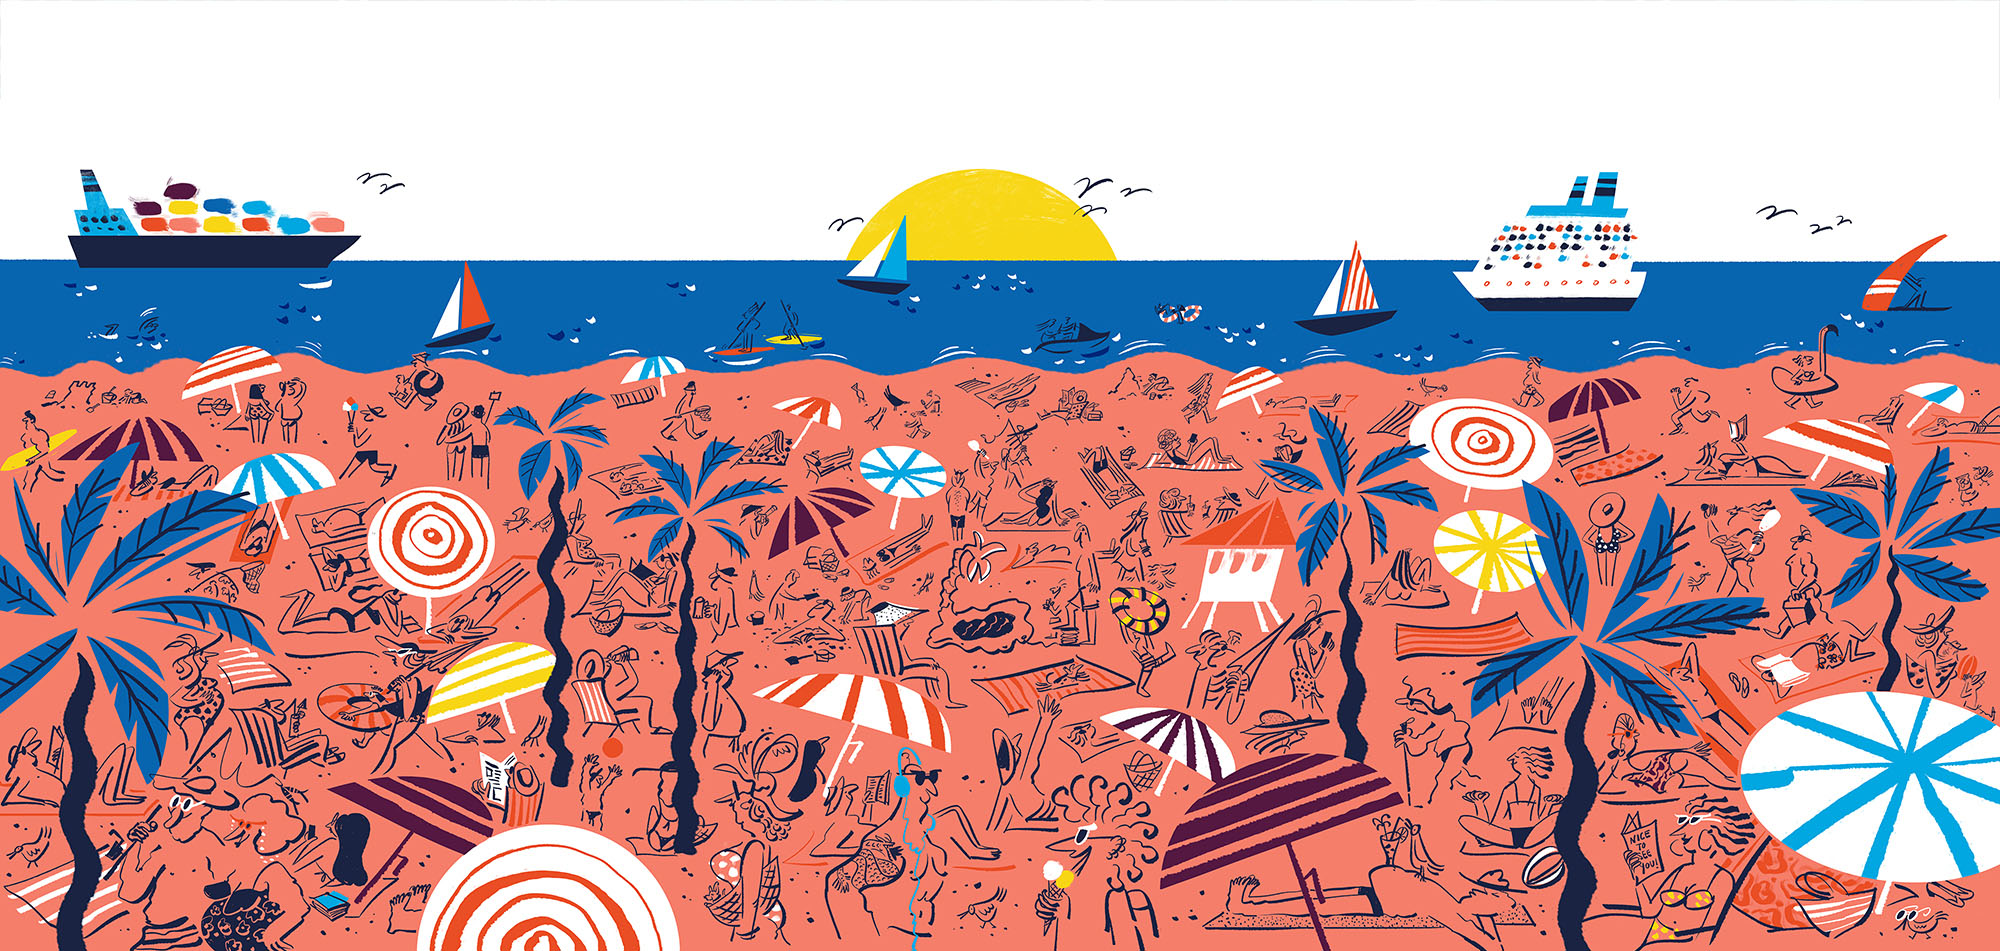 Mural illustration for Las Olas Store in Fort Lauderdale of Warby Parker by Lalalimola - A beach scene